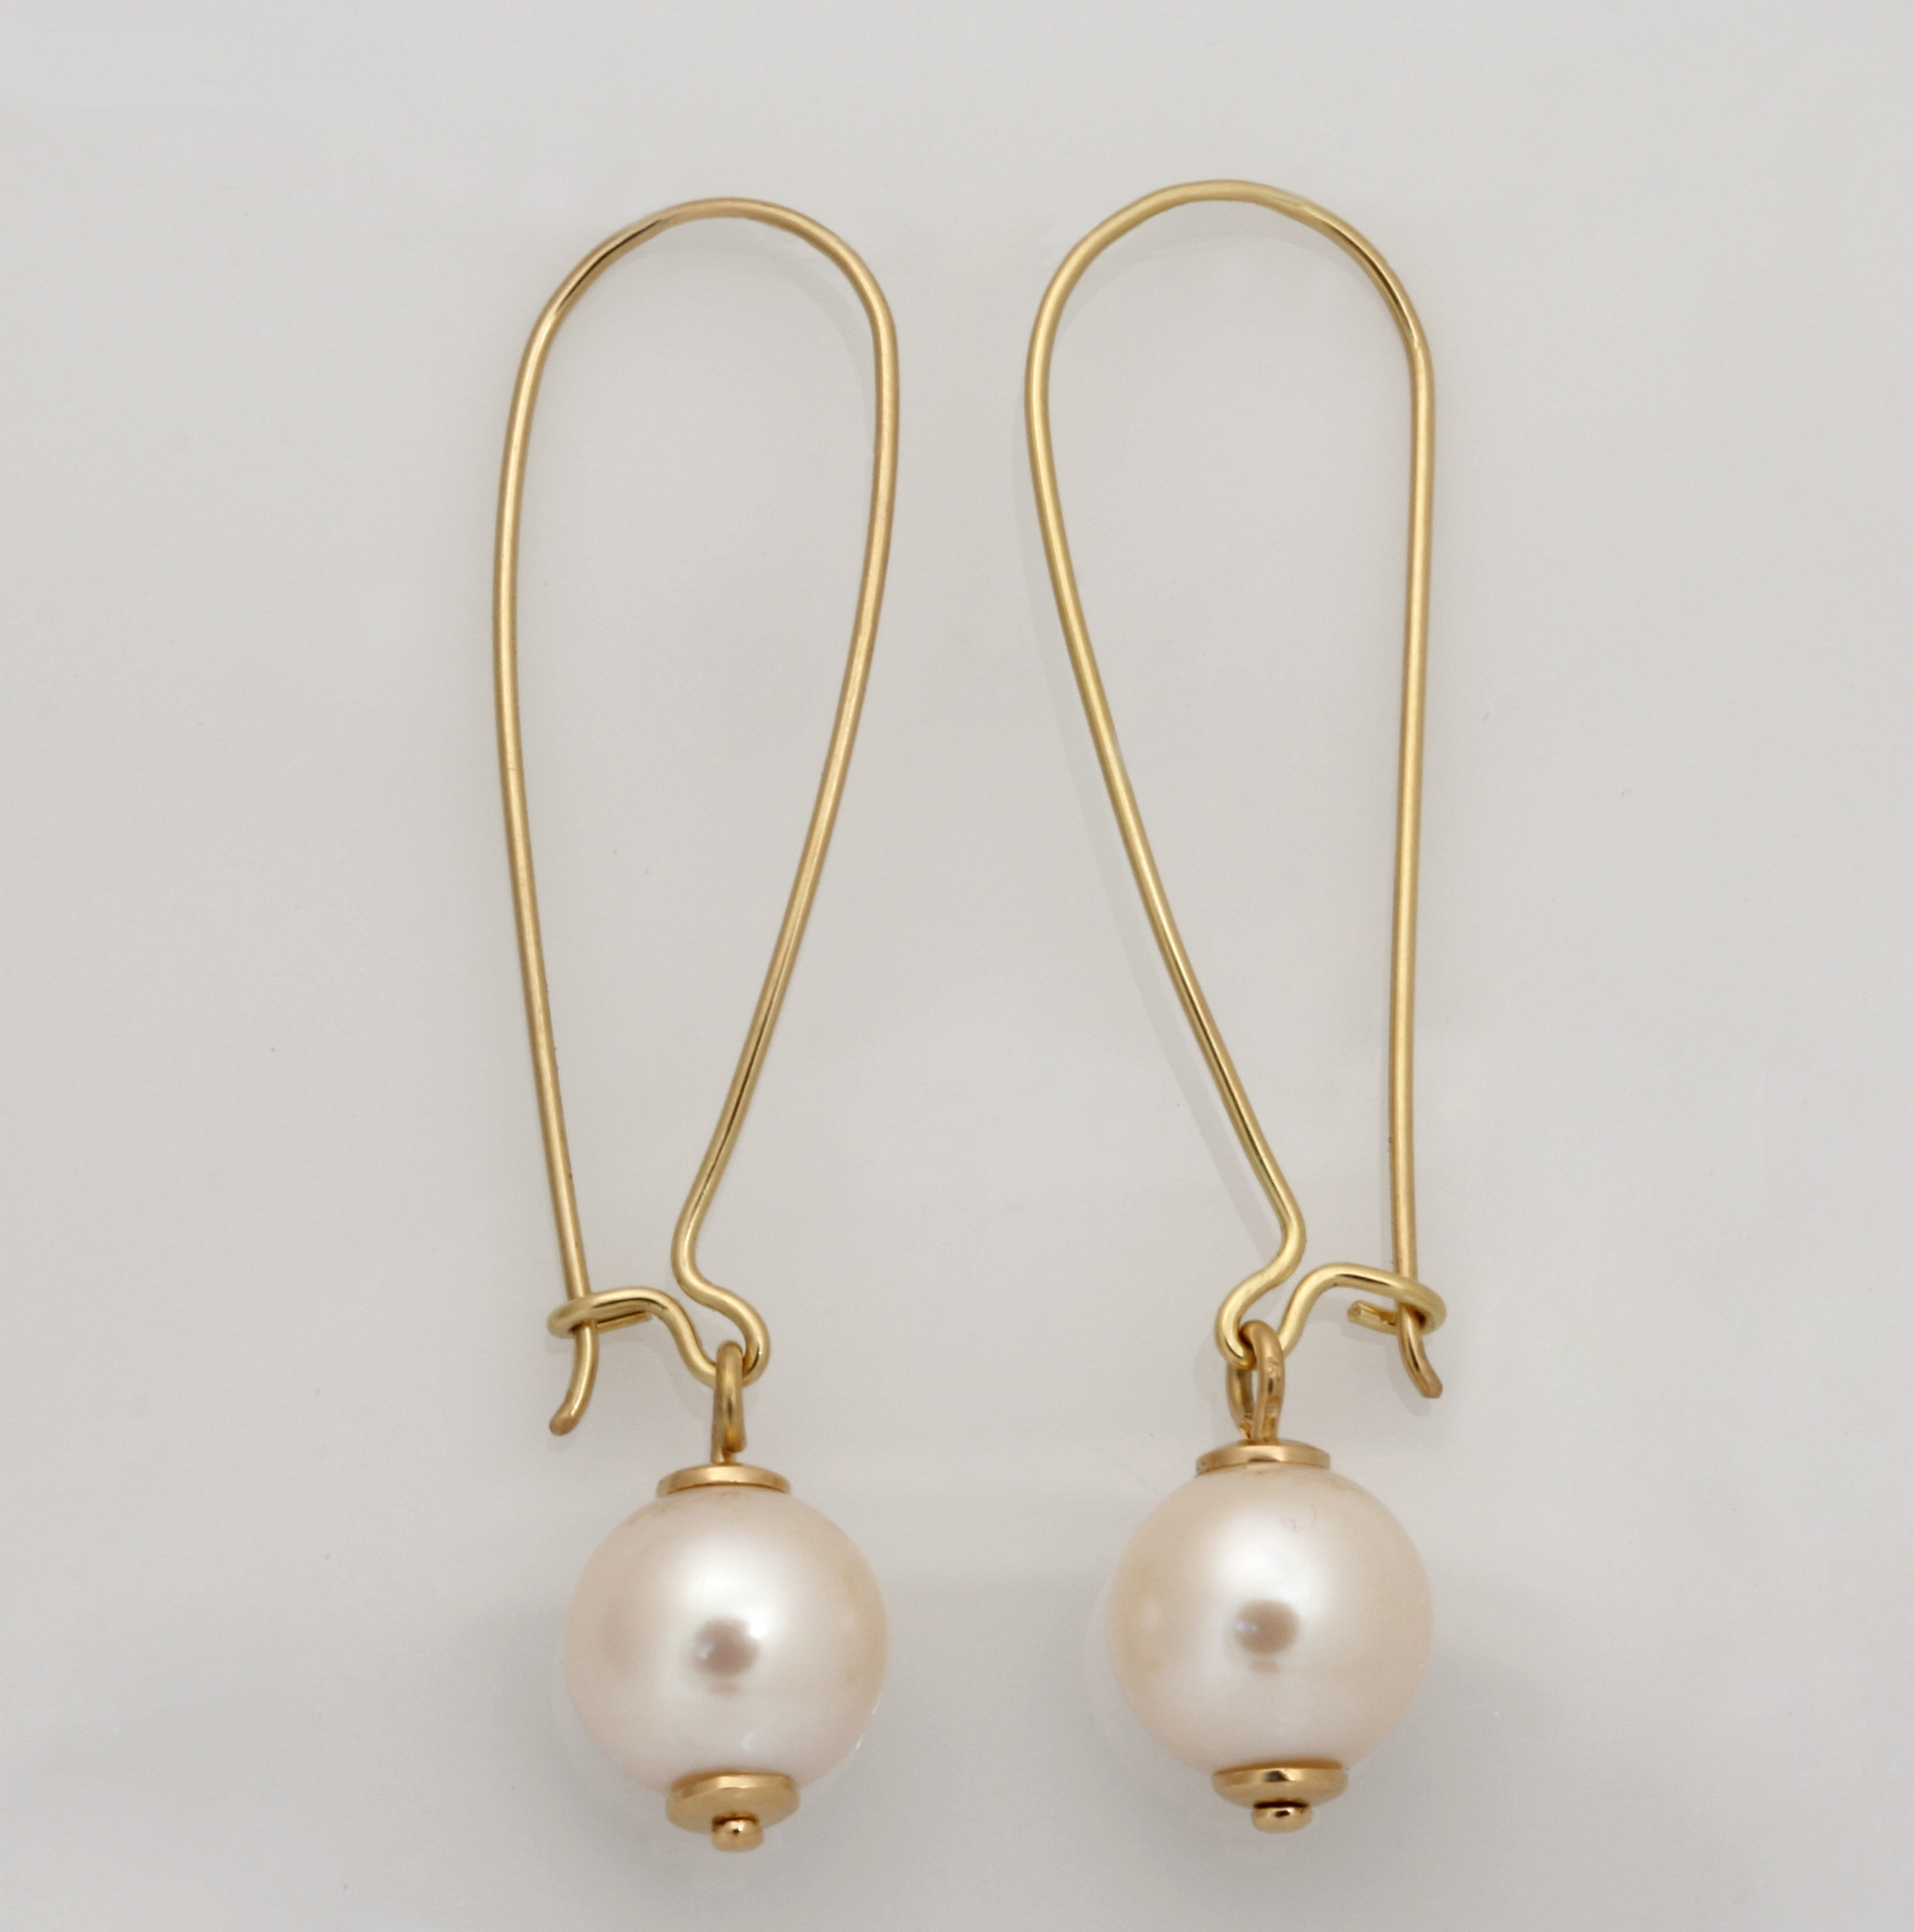 Handmade ladies 18ct yellow gold wire drop earrings featuring fresh water pearls